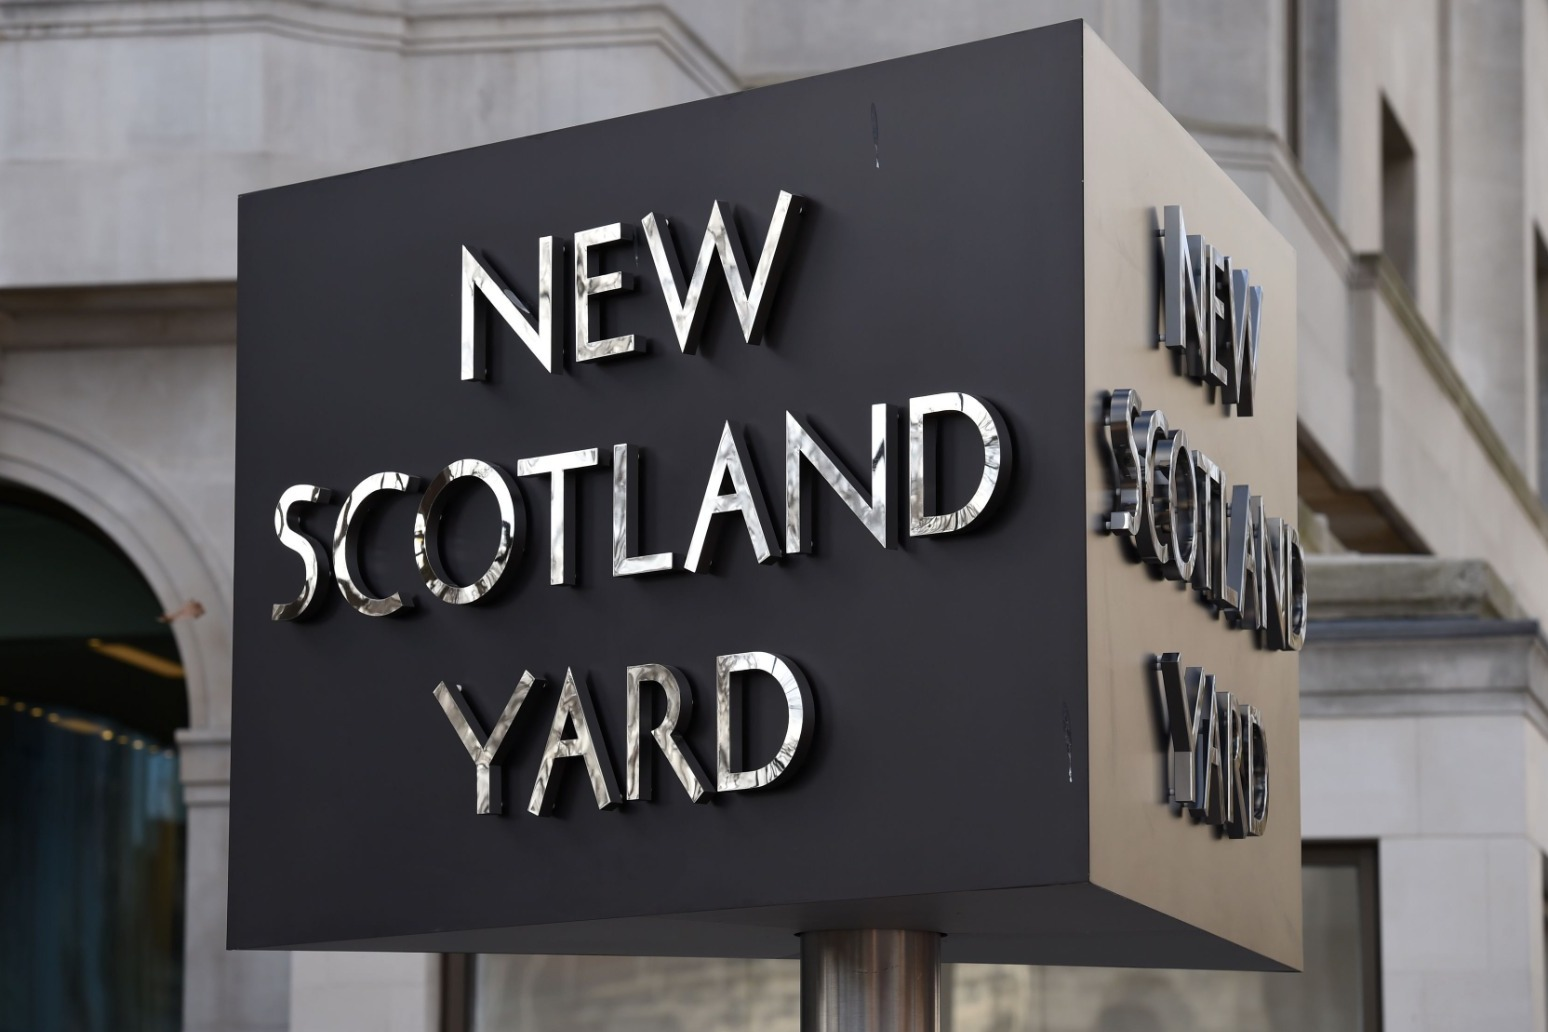 Met Police conducts a new forensic review of Daniel Morgan's murder